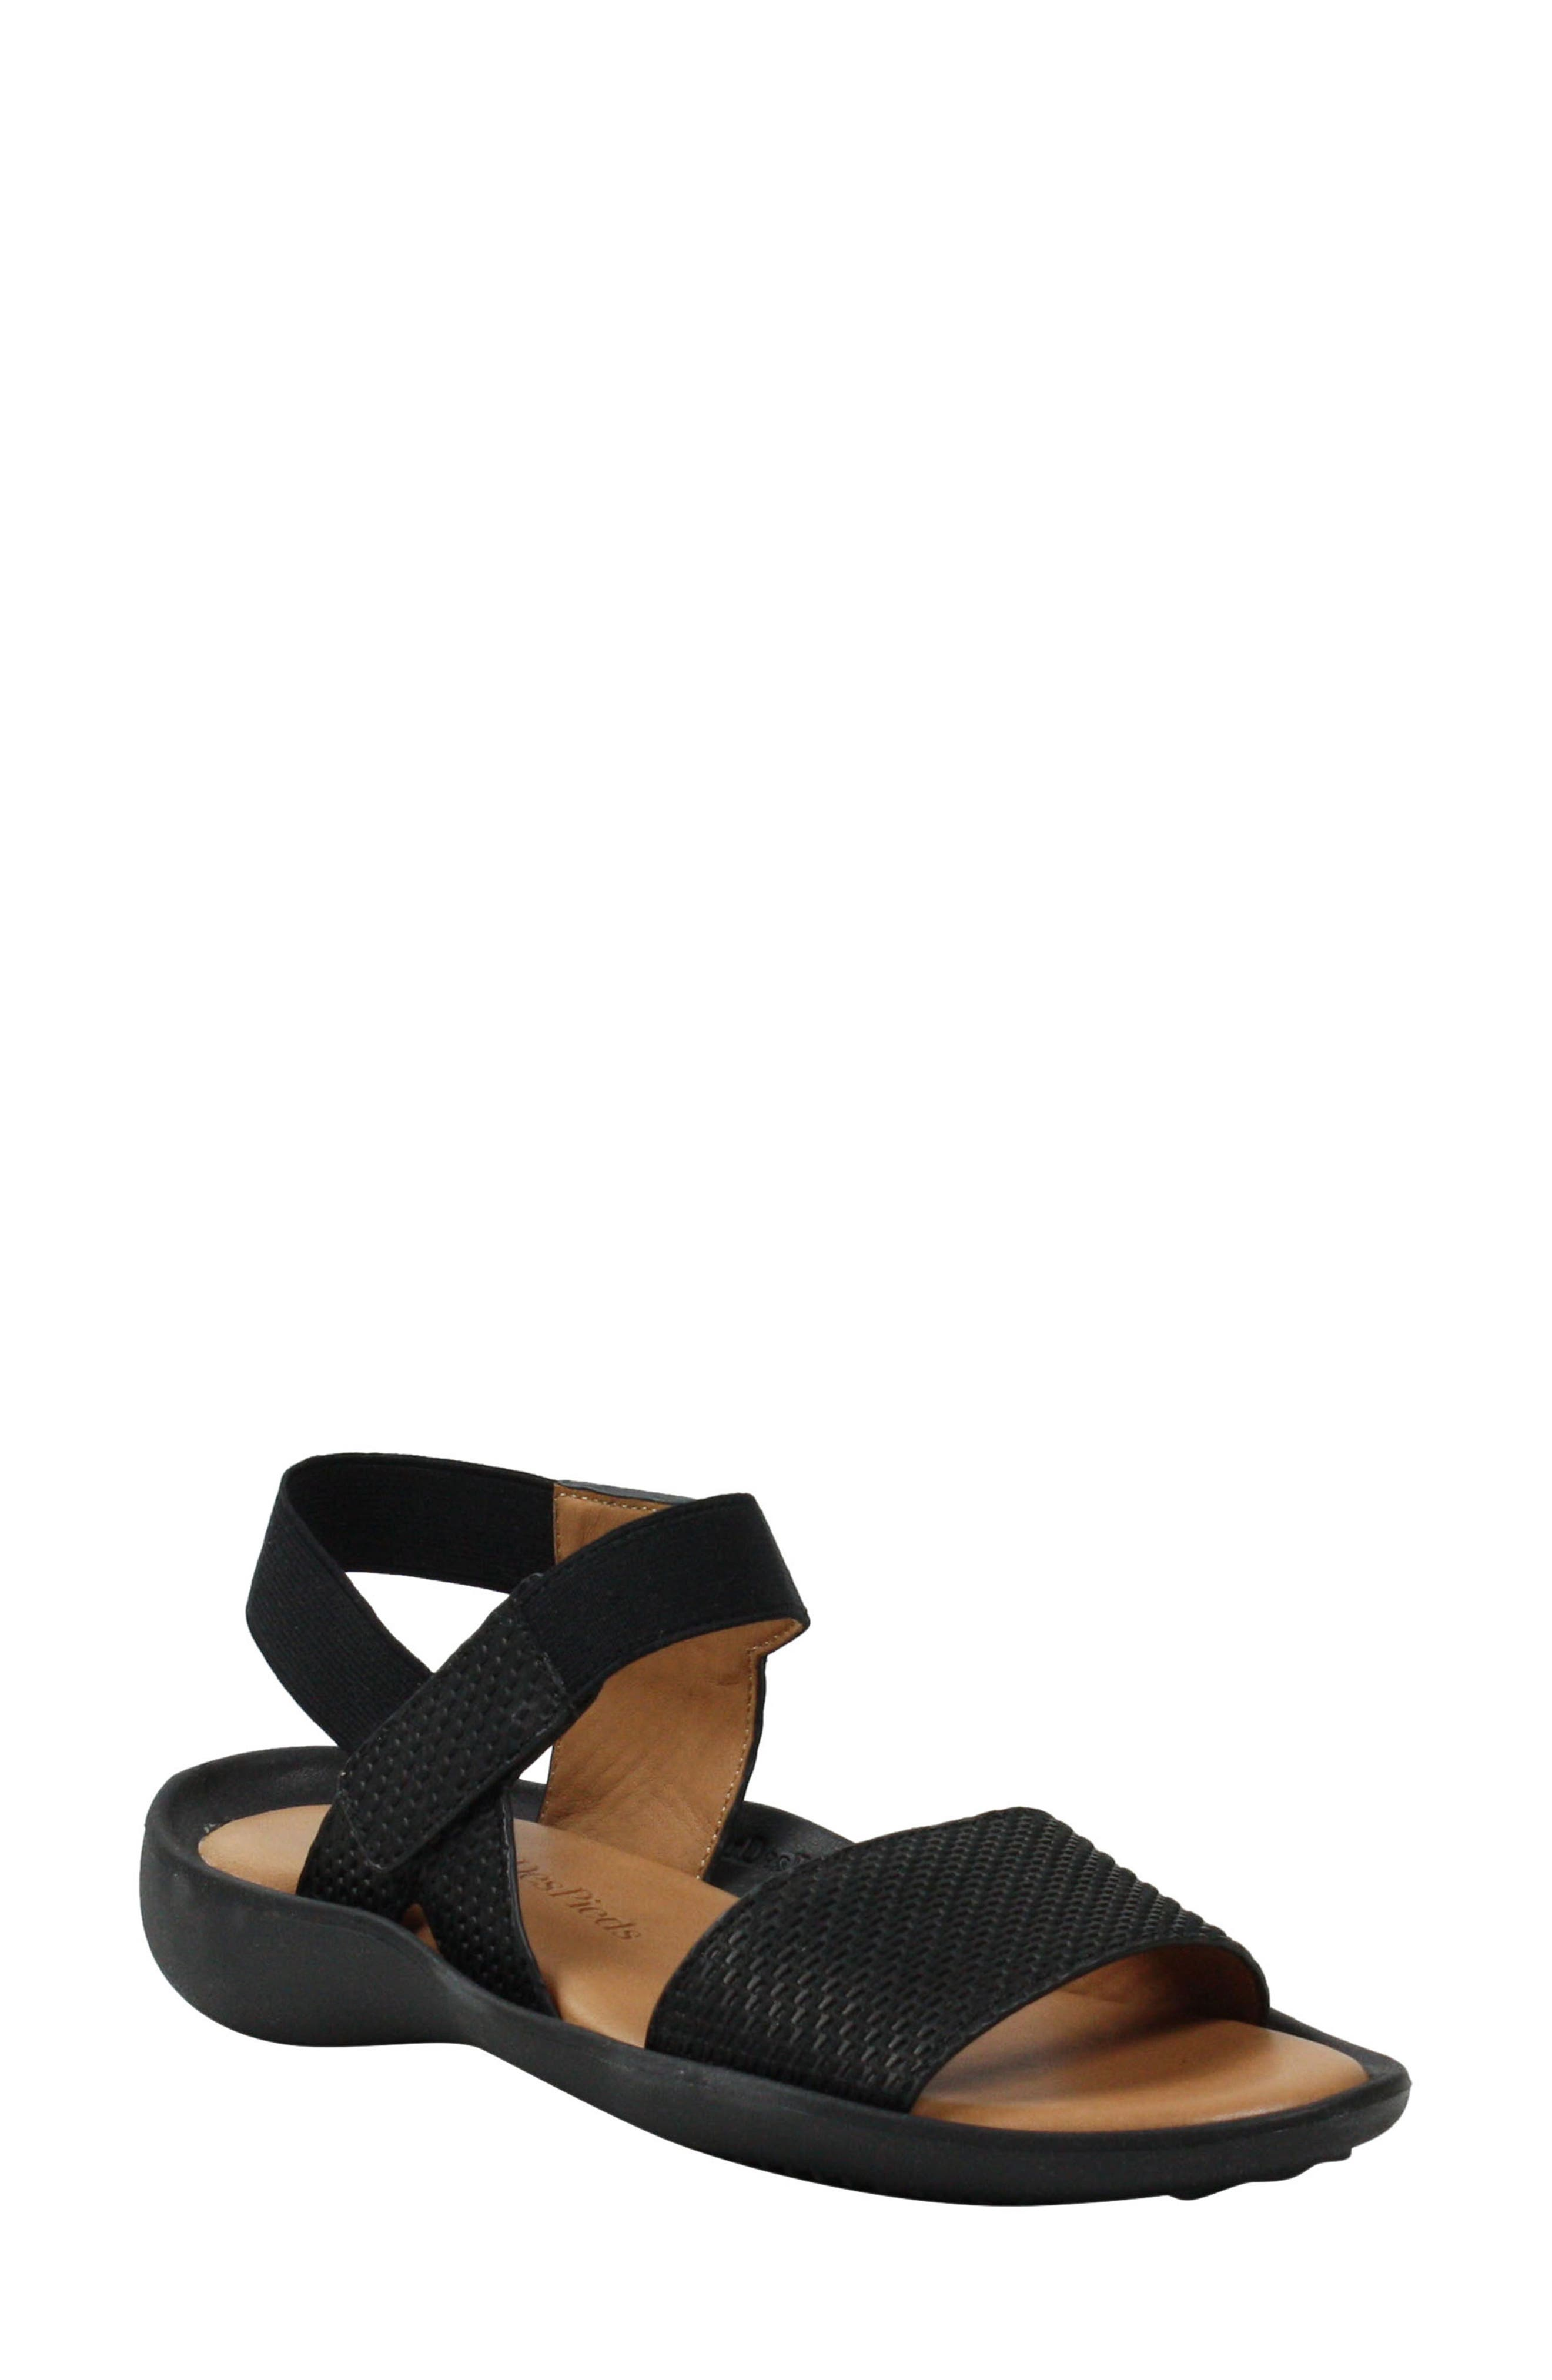 L'AMOUR DES PIEDS, Nolwyn Sandal, Main thumbnail 1, color, BLACK WOVEN LEATHER